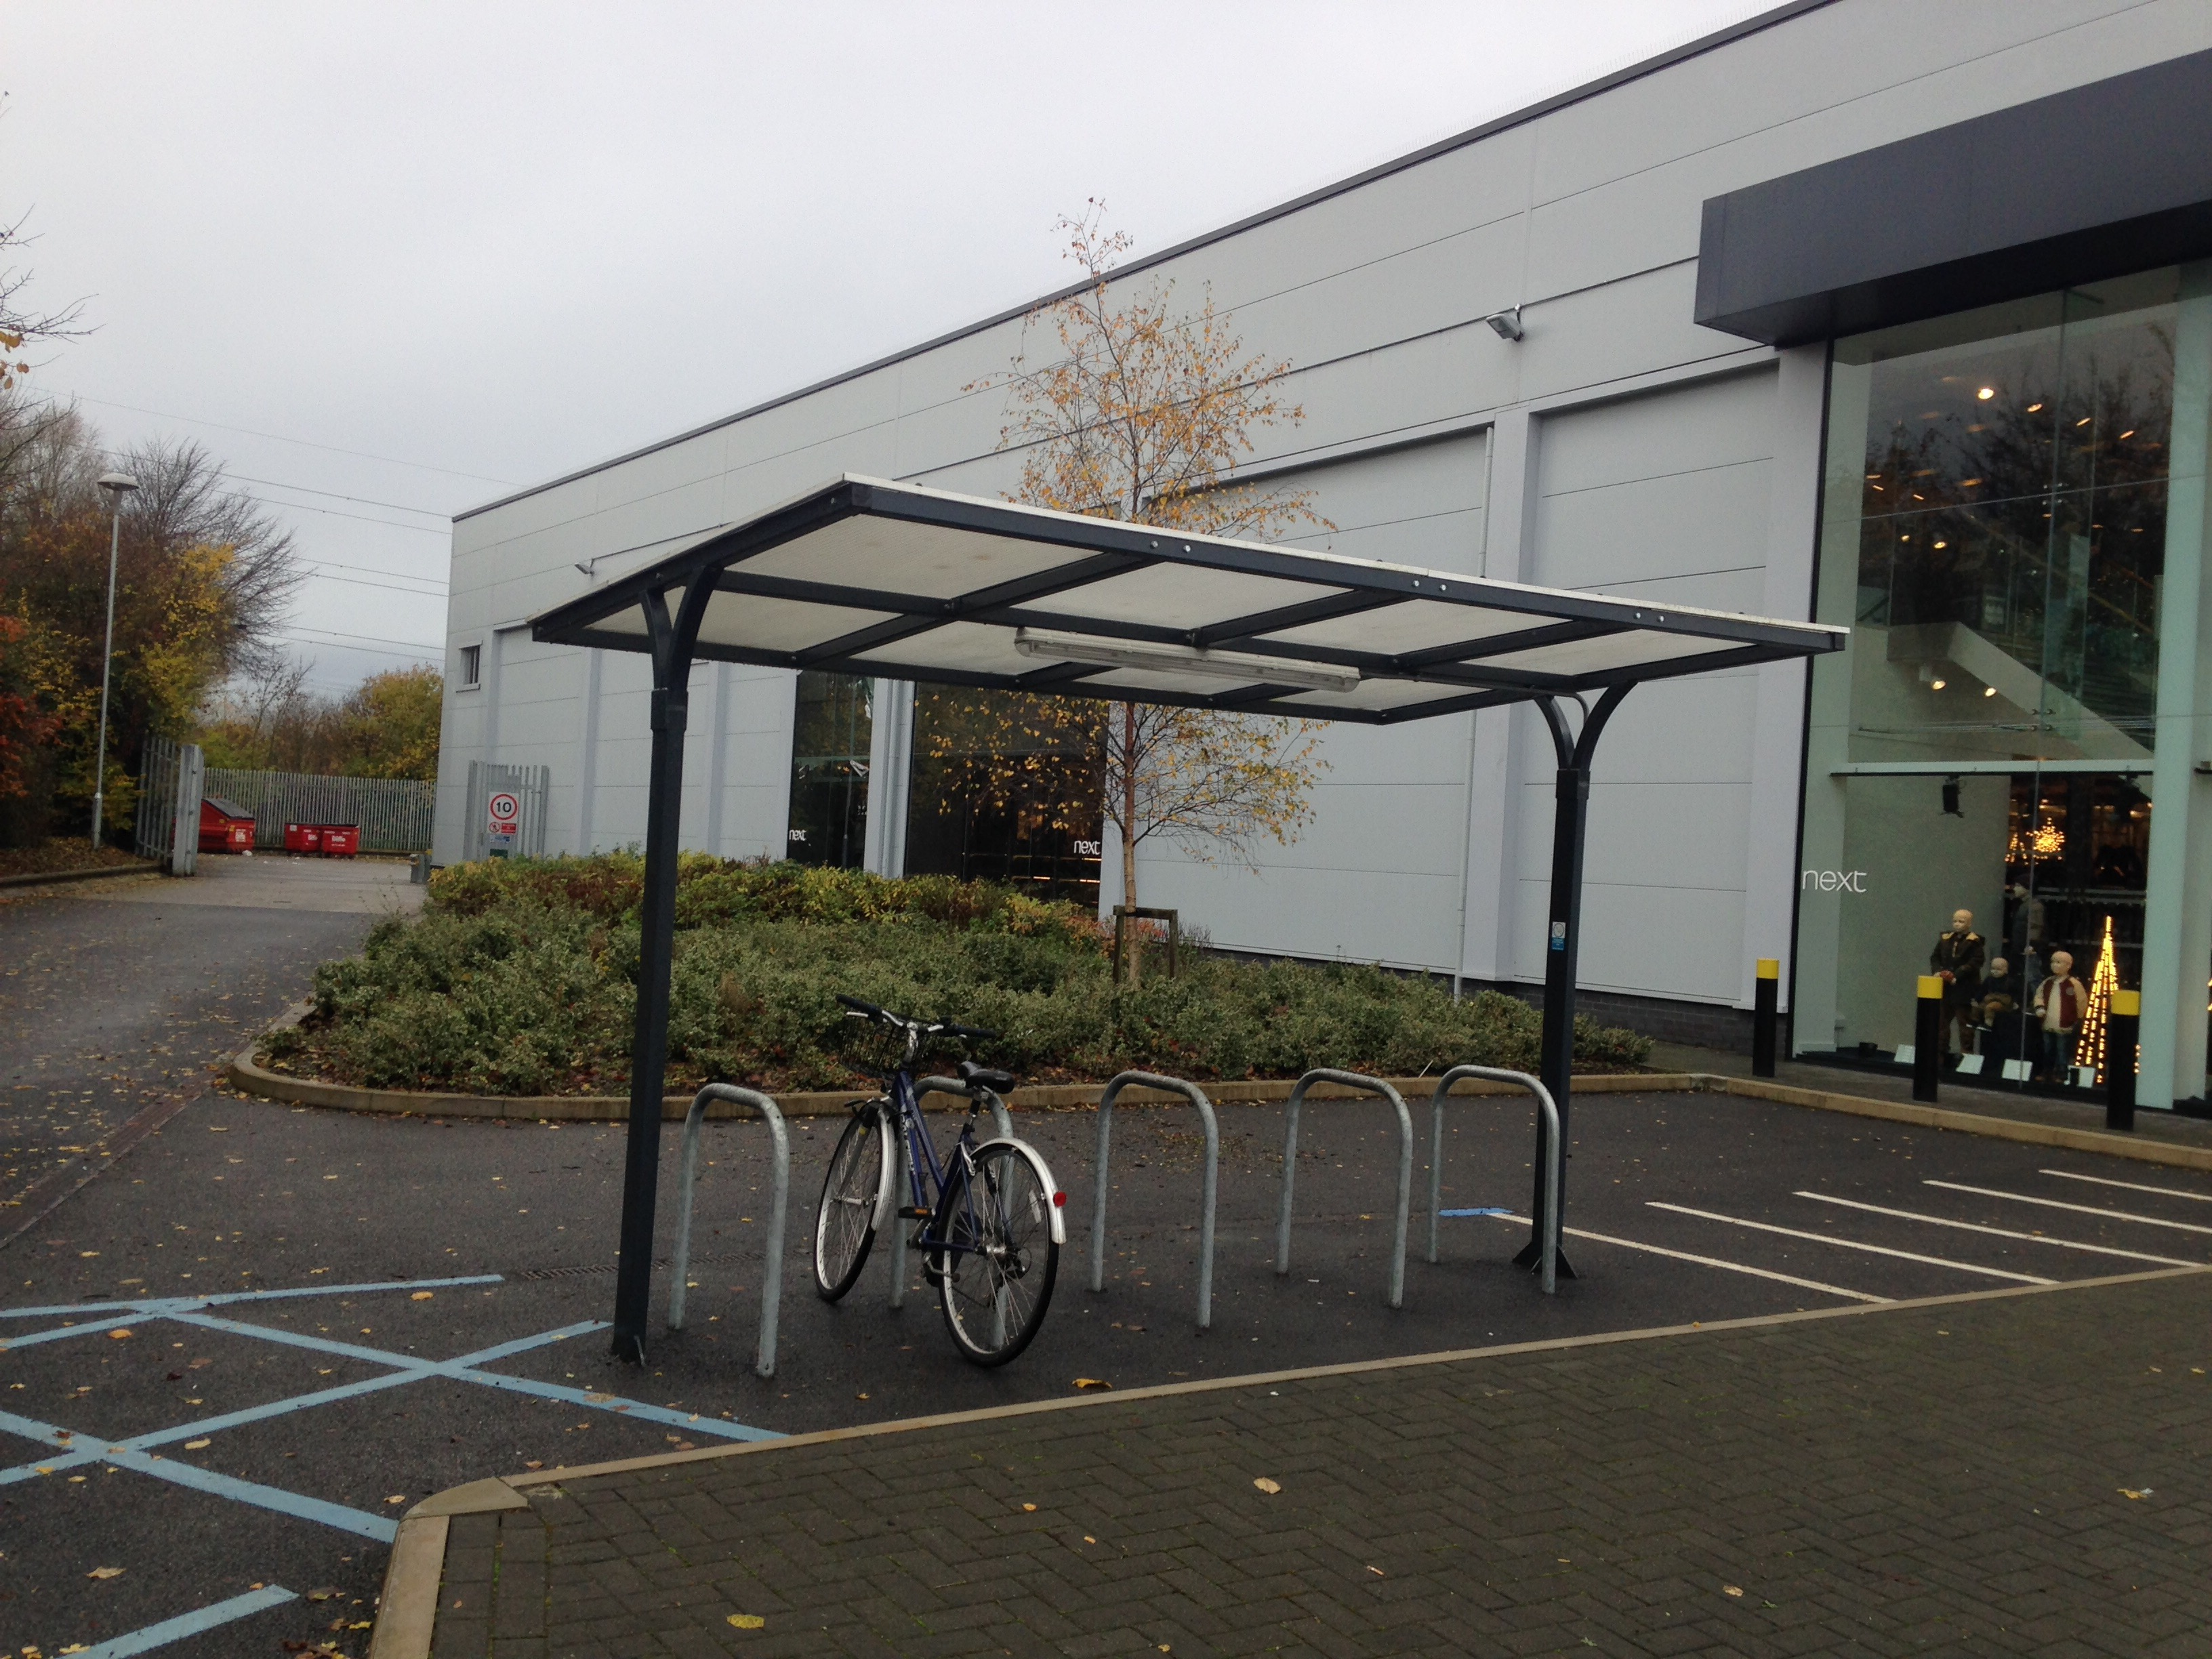 Luxury bike parking with a roof!